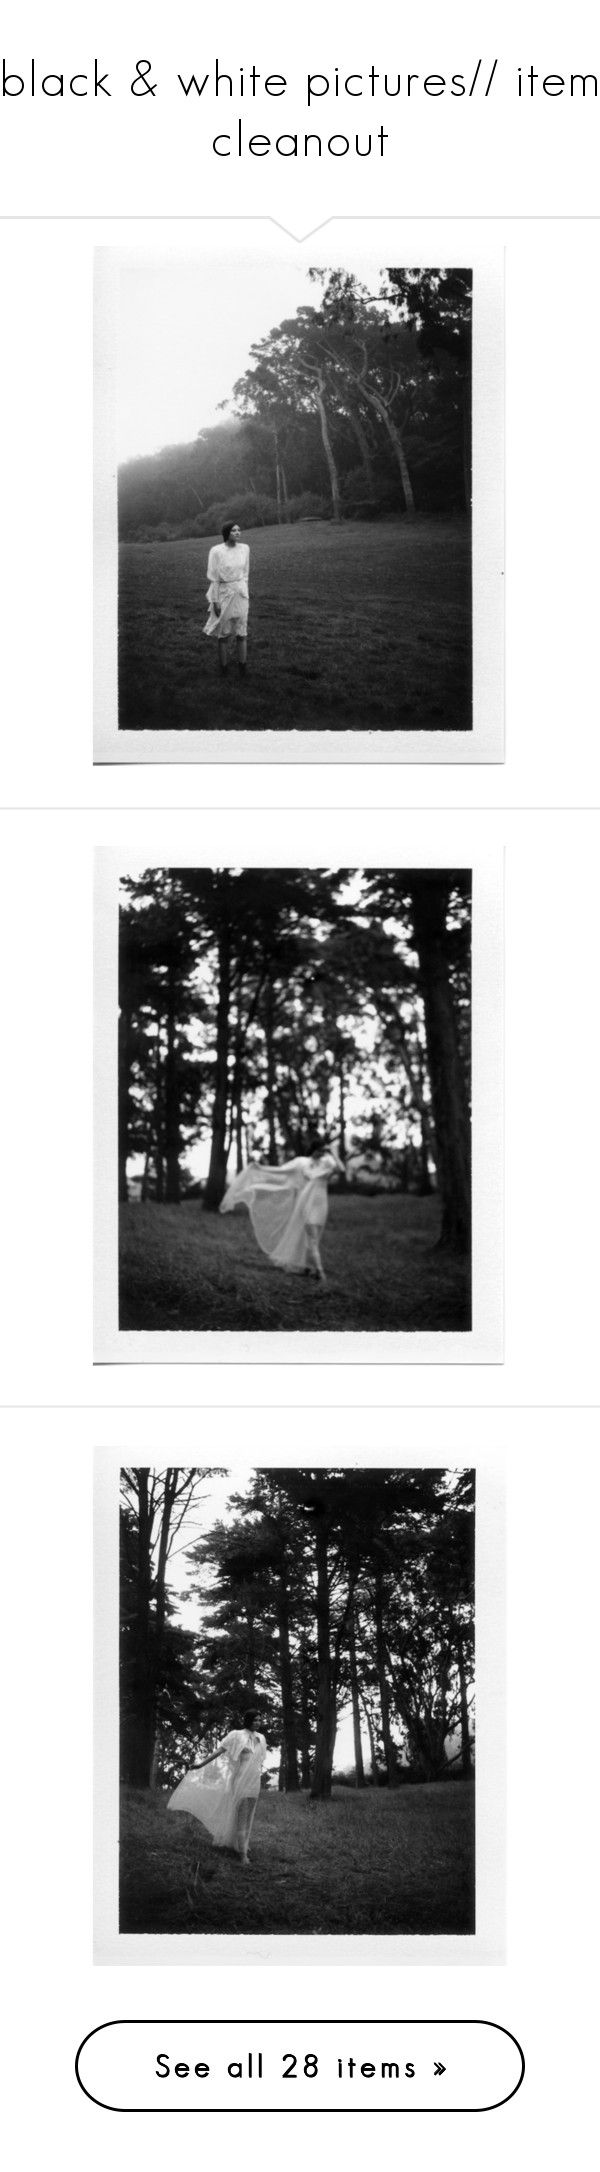 """""""black & white pictures// item cleanout"""" by unsaid-things ❤ liked on Polyvore featuring amanda steele, pictures, taylor swift, ouat, peter pan, backgrounds, once upon a time, black and white, couples and disney"""